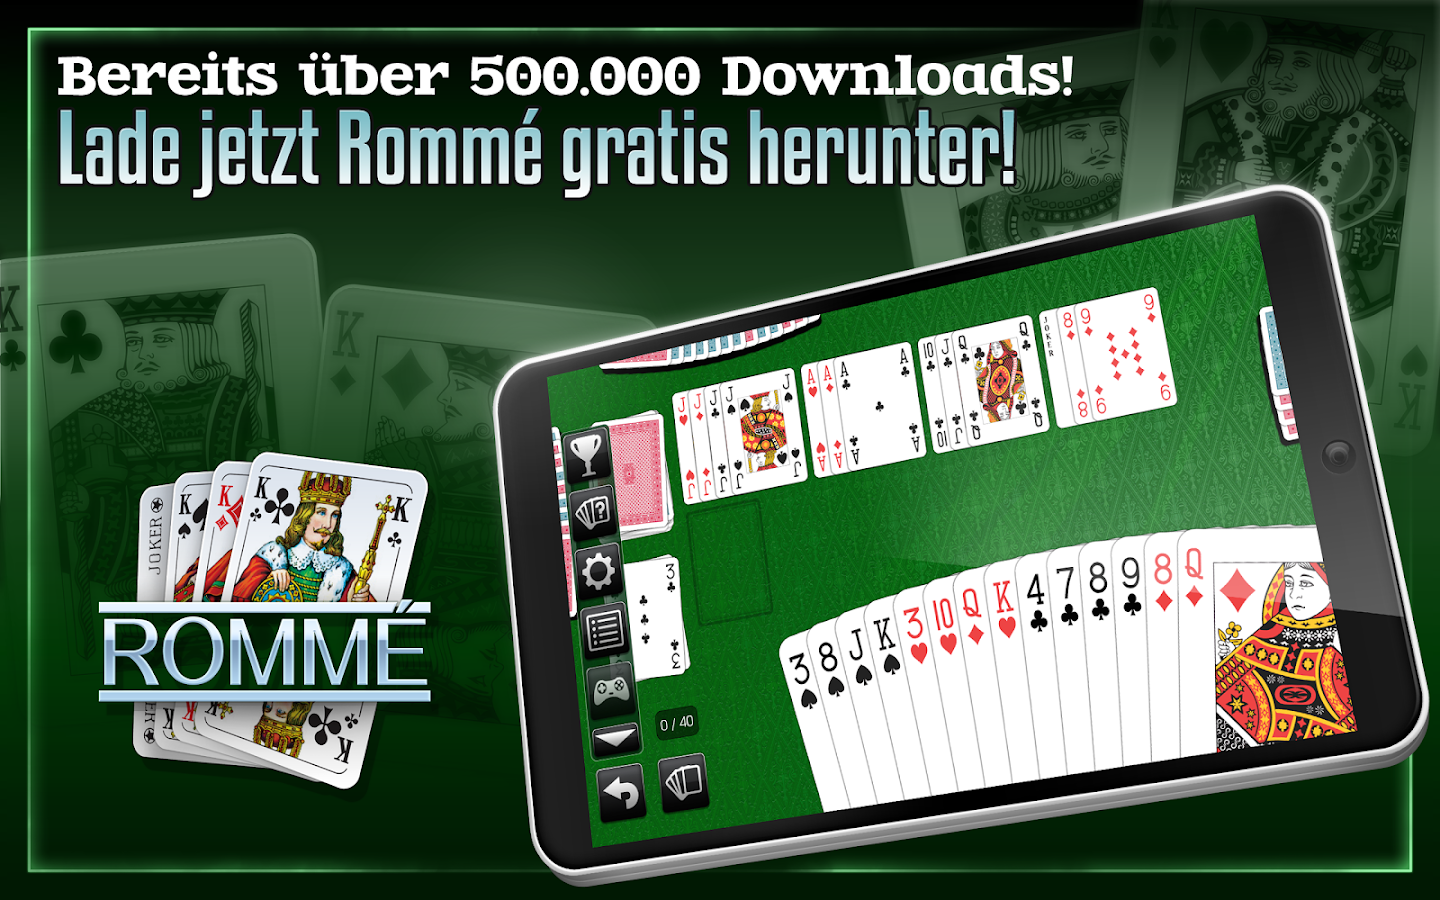 romme gratis download